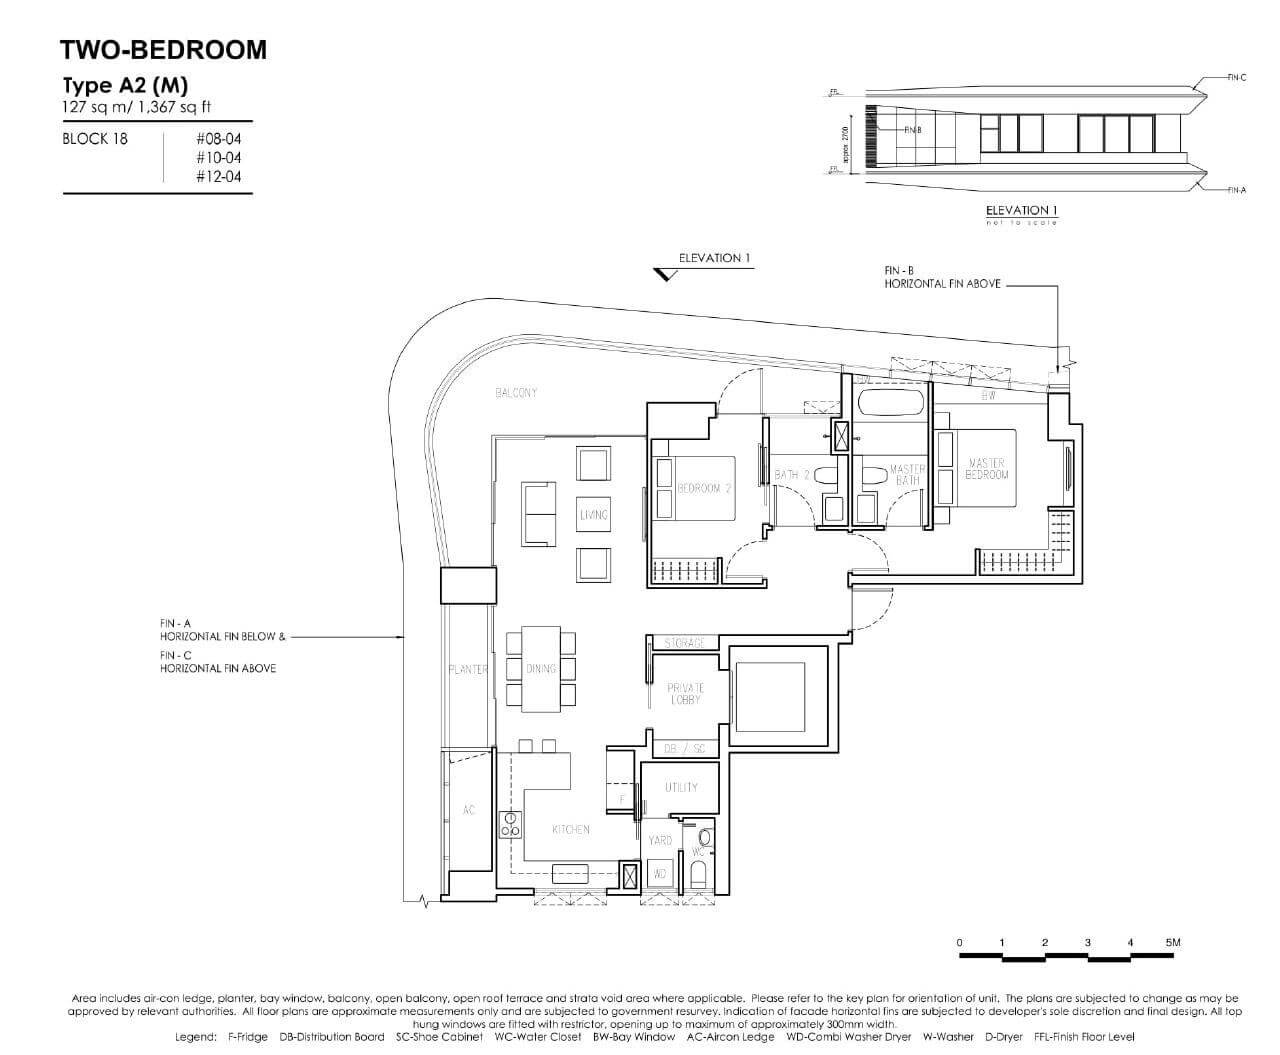 New Futura - Floor Plans - 2 Bedroom - Type A2